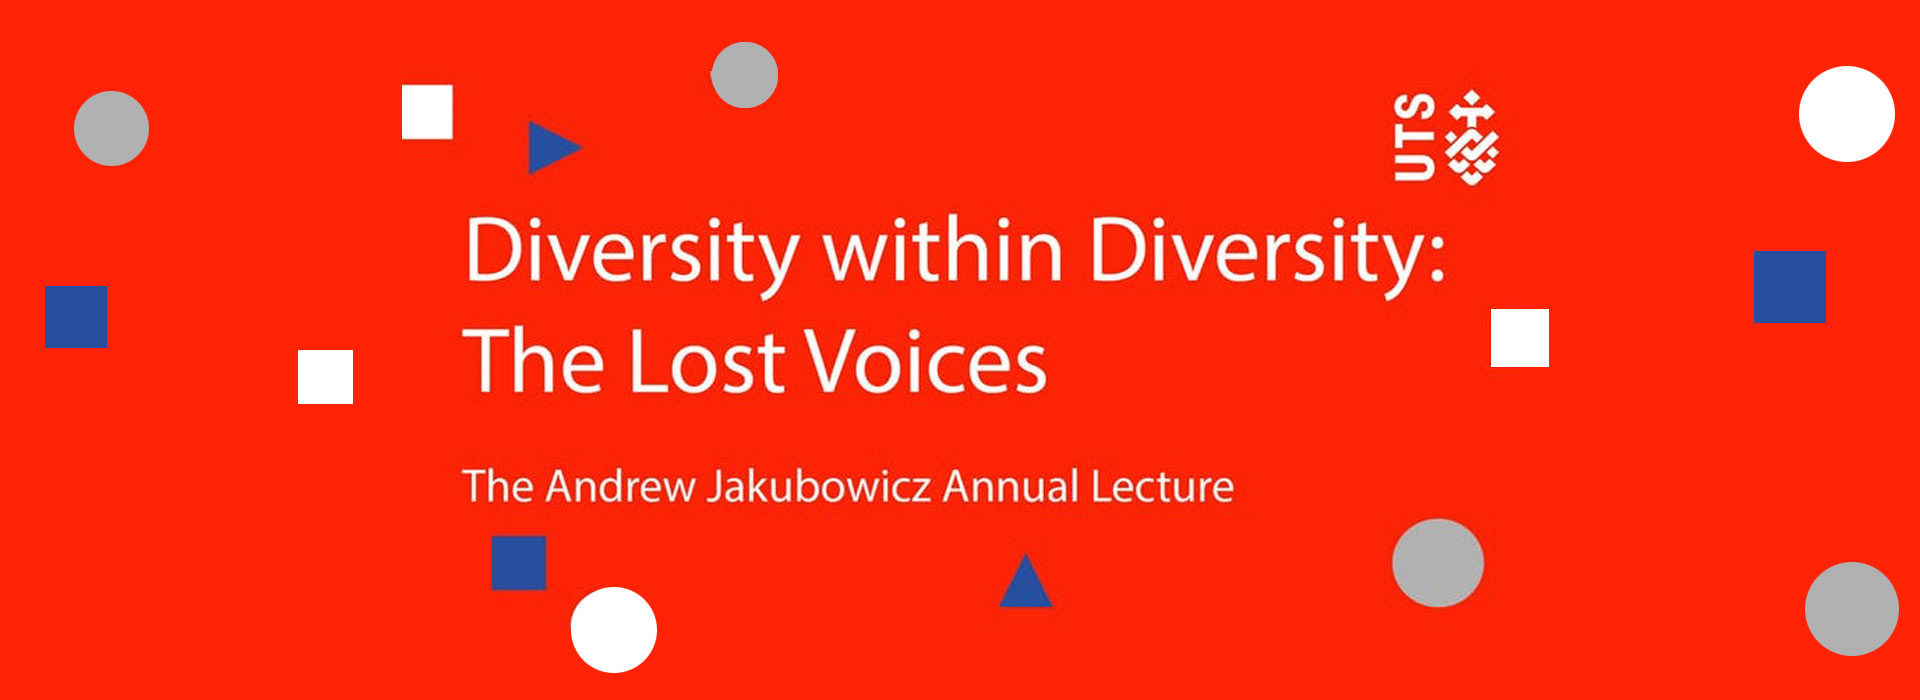 "Banner image reads: ""Diversity within Diversity: The Lost Voices. The Andrew Jakubowicz Annual Lecture."